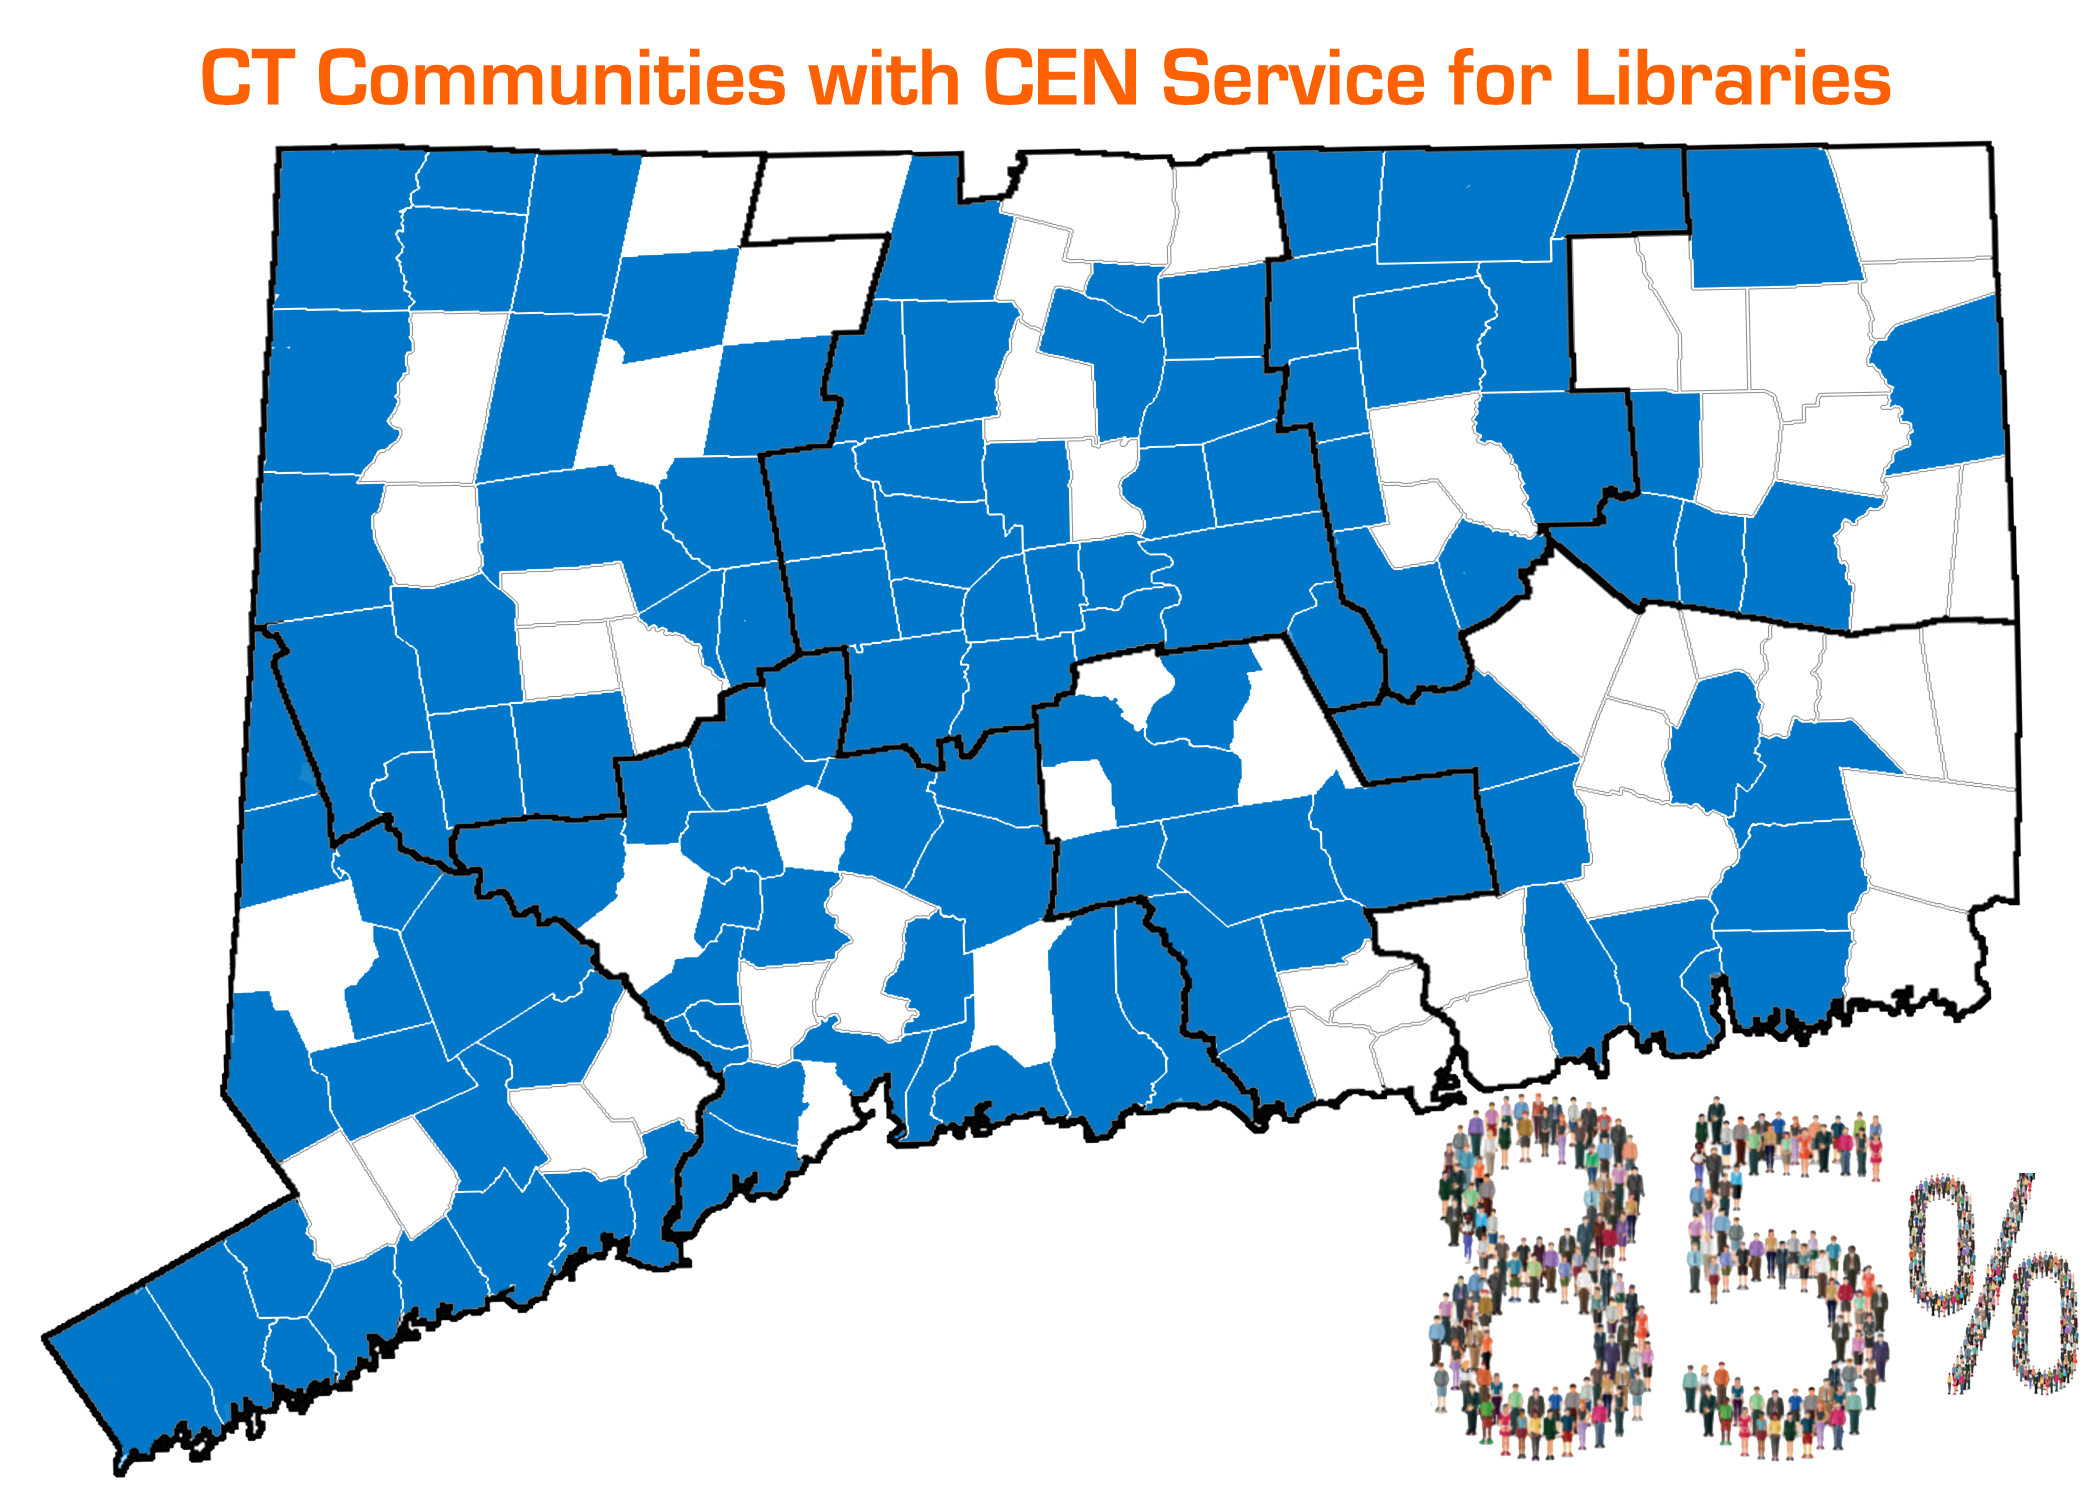 Map of CT partially shaded blue, above map reads: CT Communities with CEN Service for Libraries, below map reads: 85%